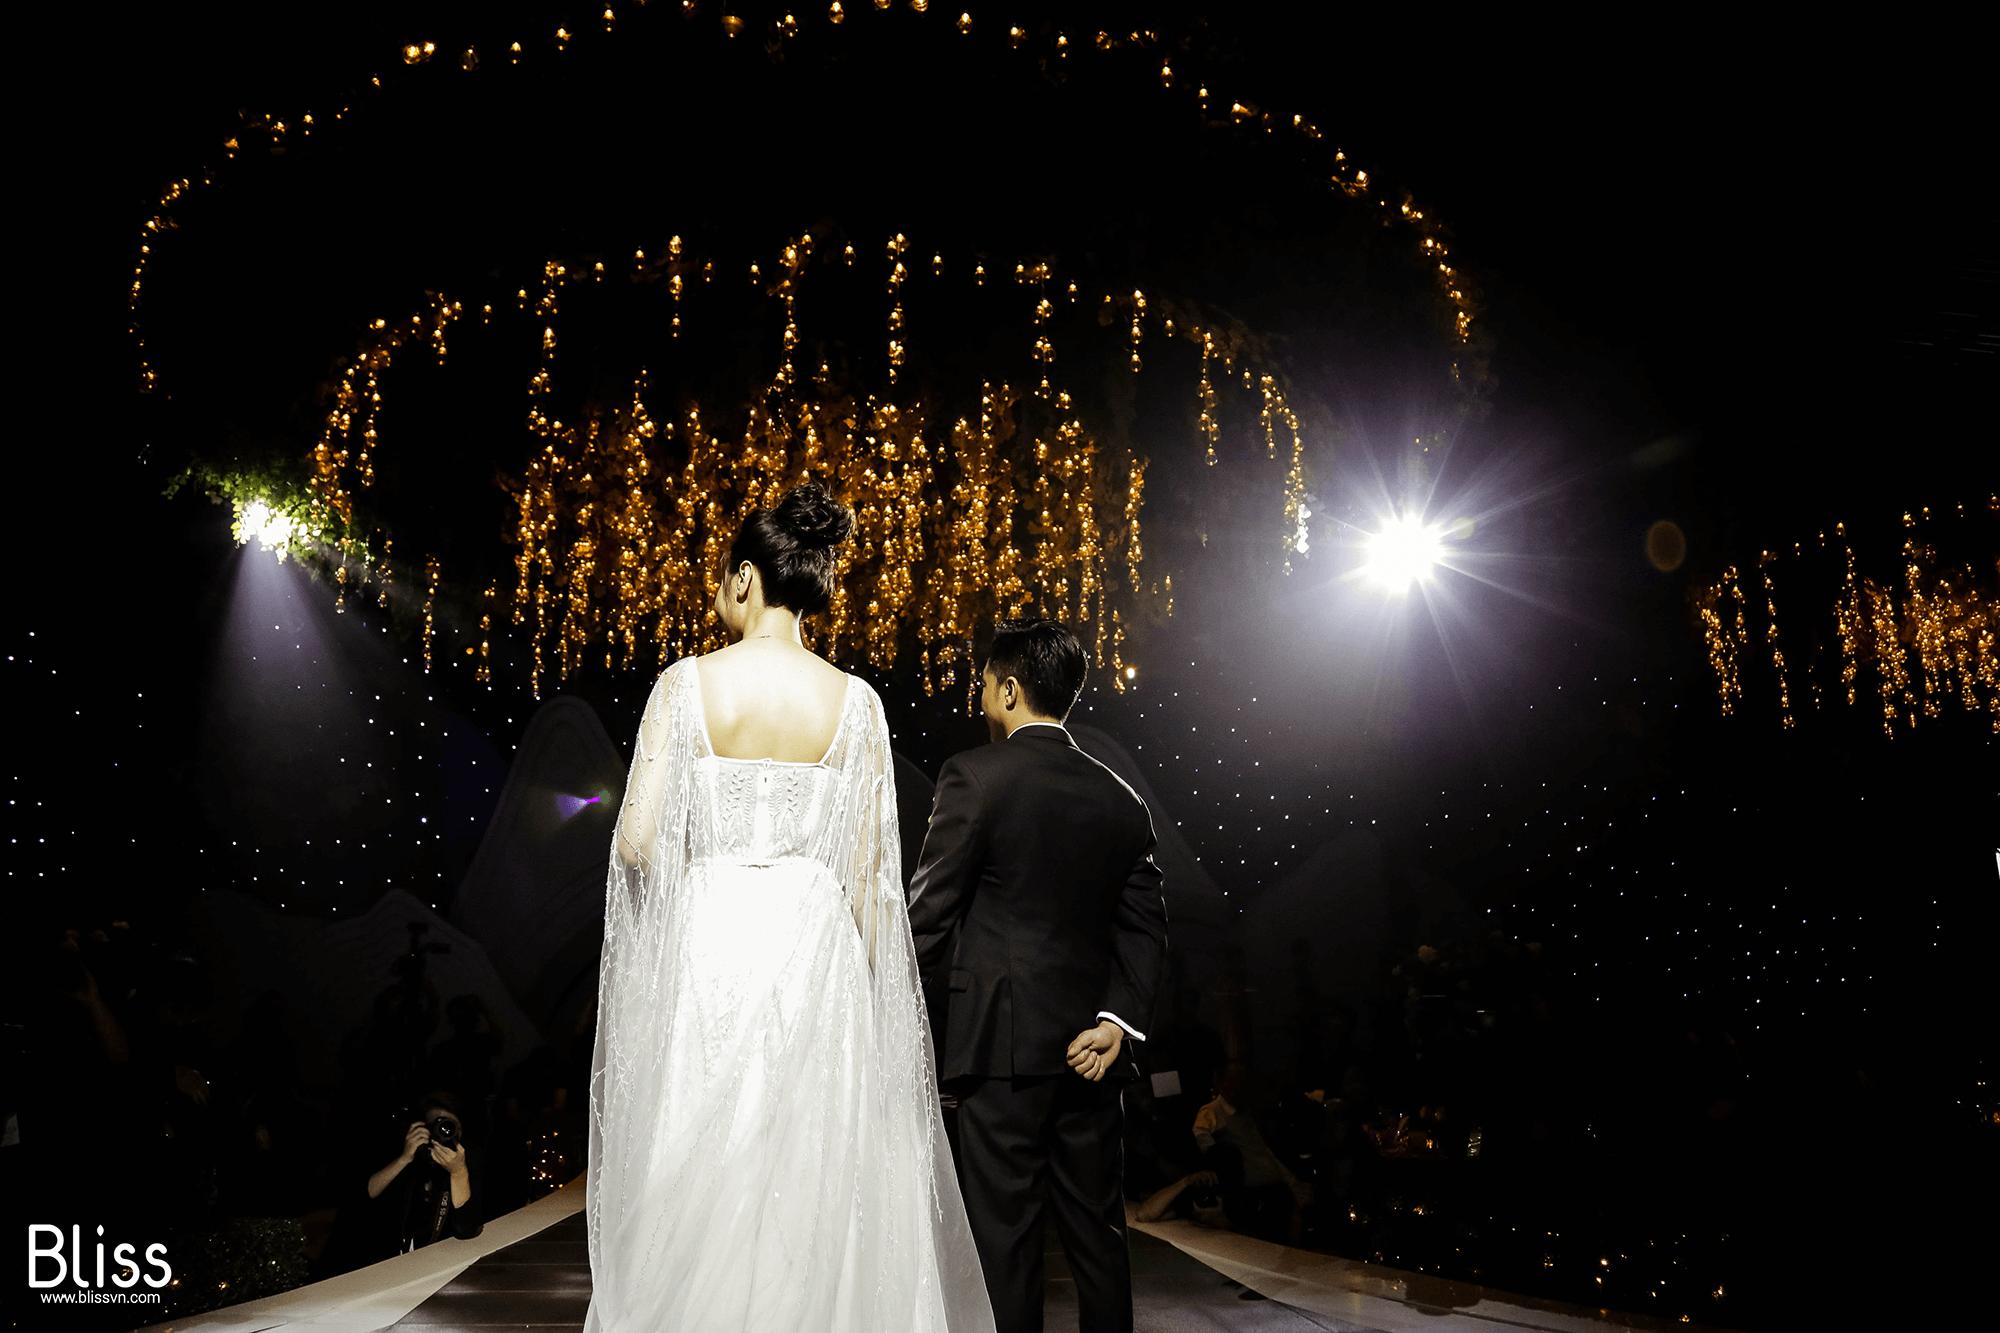 luxury vietnam wedding ceremony Nguyen Quoc Cuong & Dam Thu Trang - Bliss wedding planner vietnam